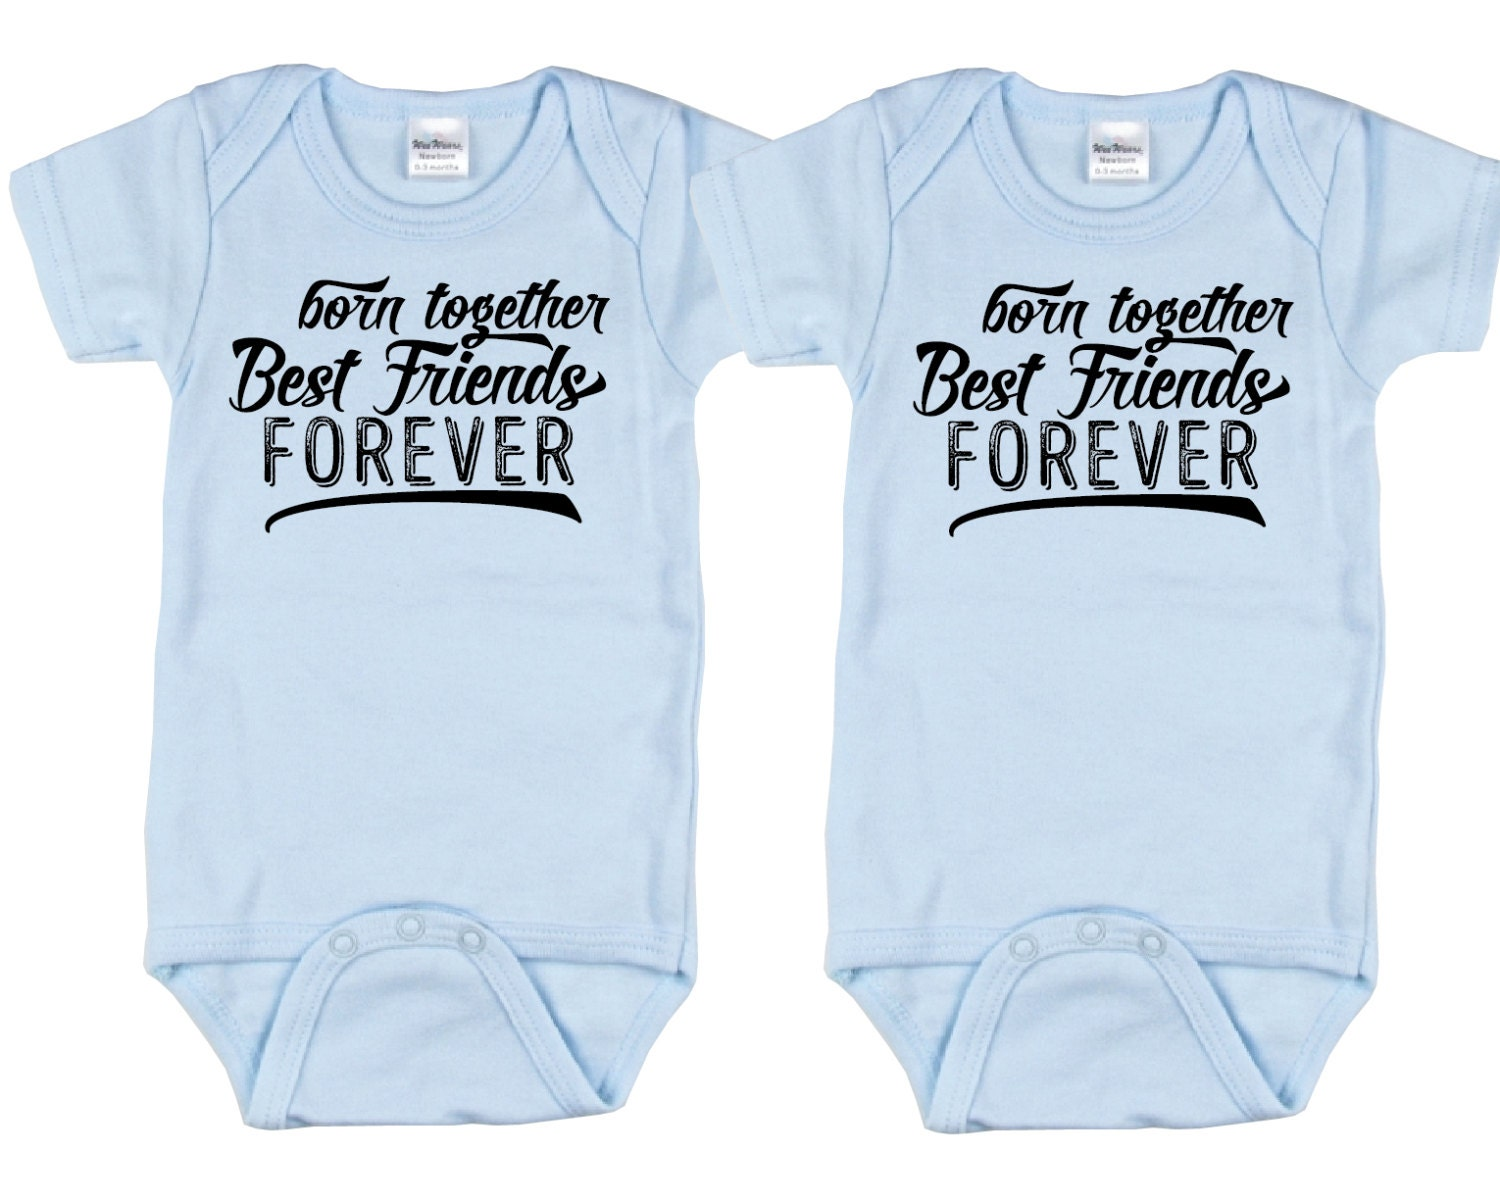 Cute Baby gift for twin boys Born Together Best Friends